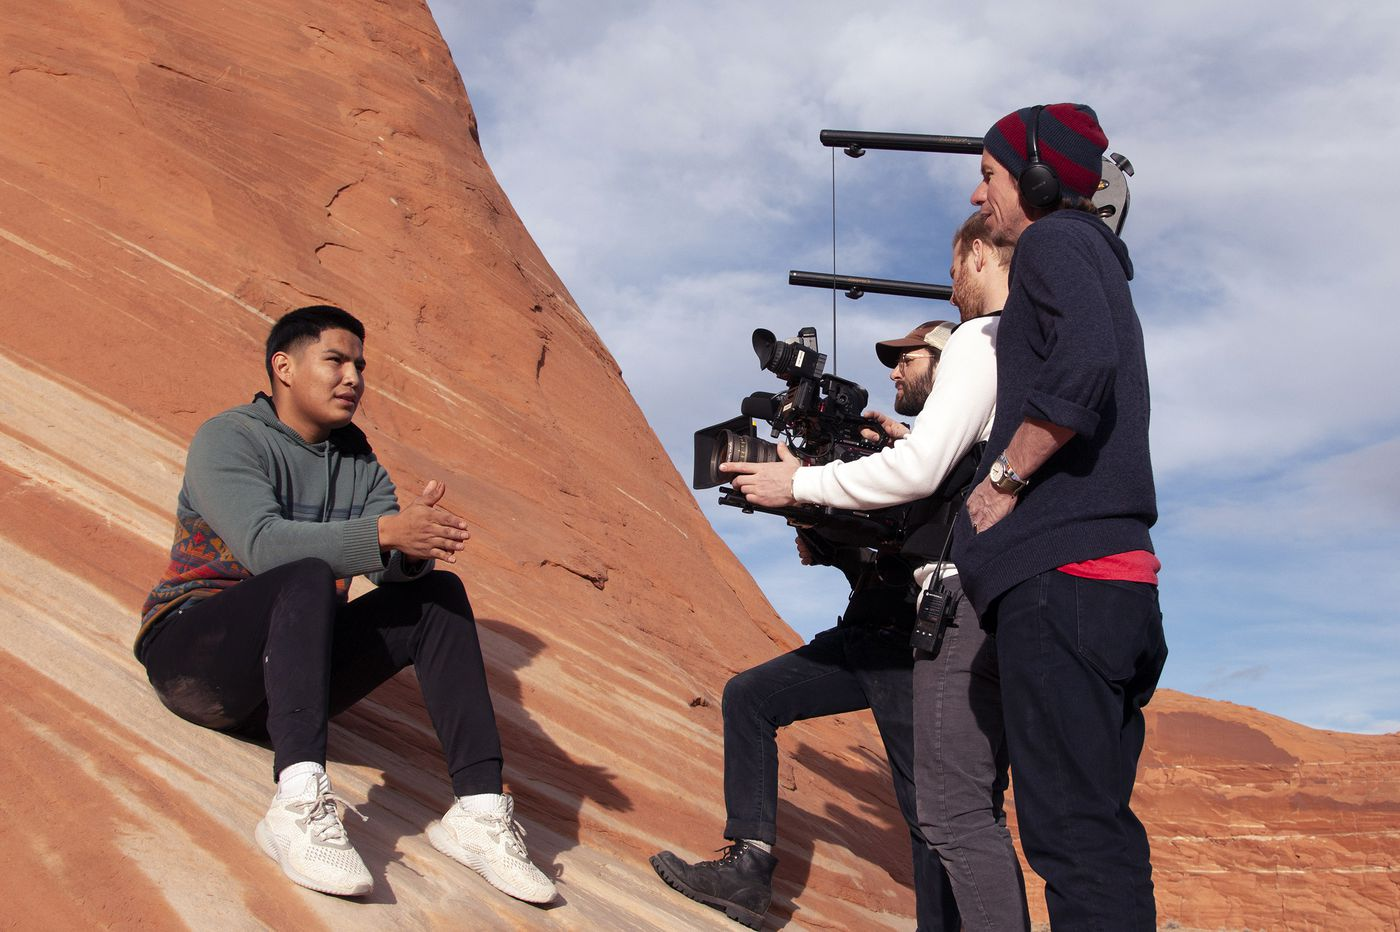 Documentary Brought Radnor Filmmakers Close to Their Subjects, and Pandemic Supplies to a Navajo Town